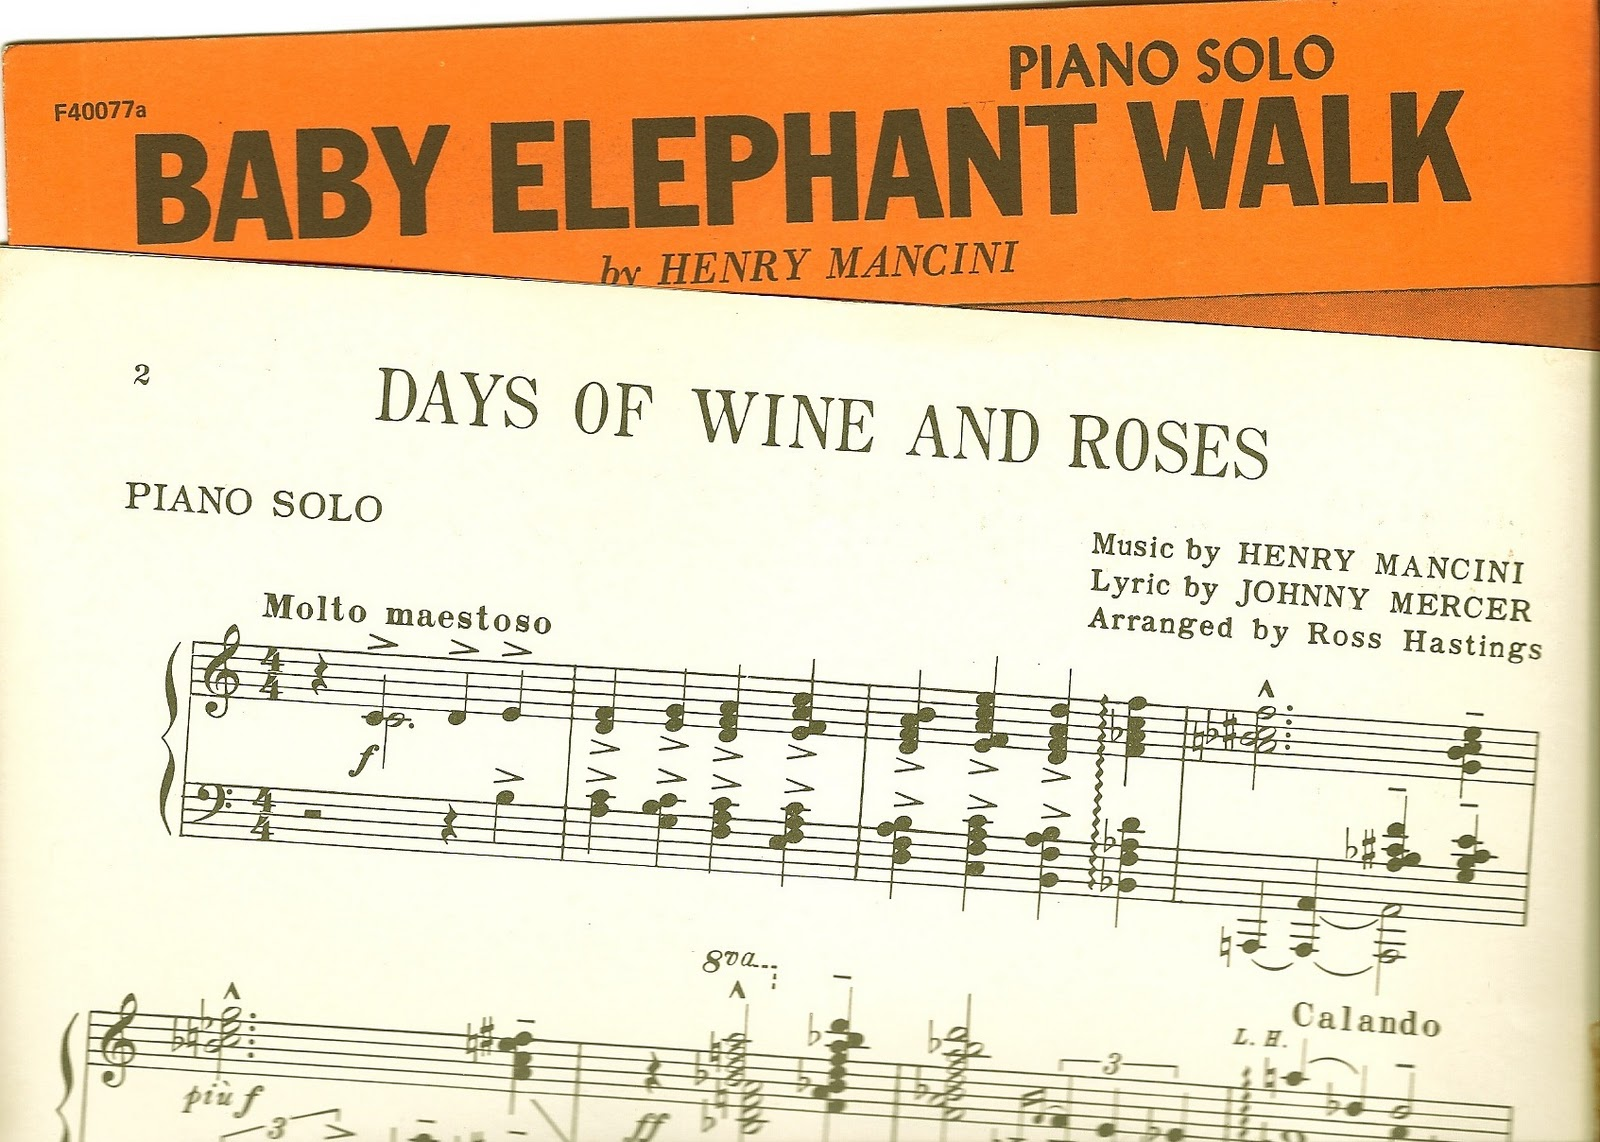 ALICE'S ARCHIVES: HENRY MANCINI: '60s Cool Comes to Kalamazoo